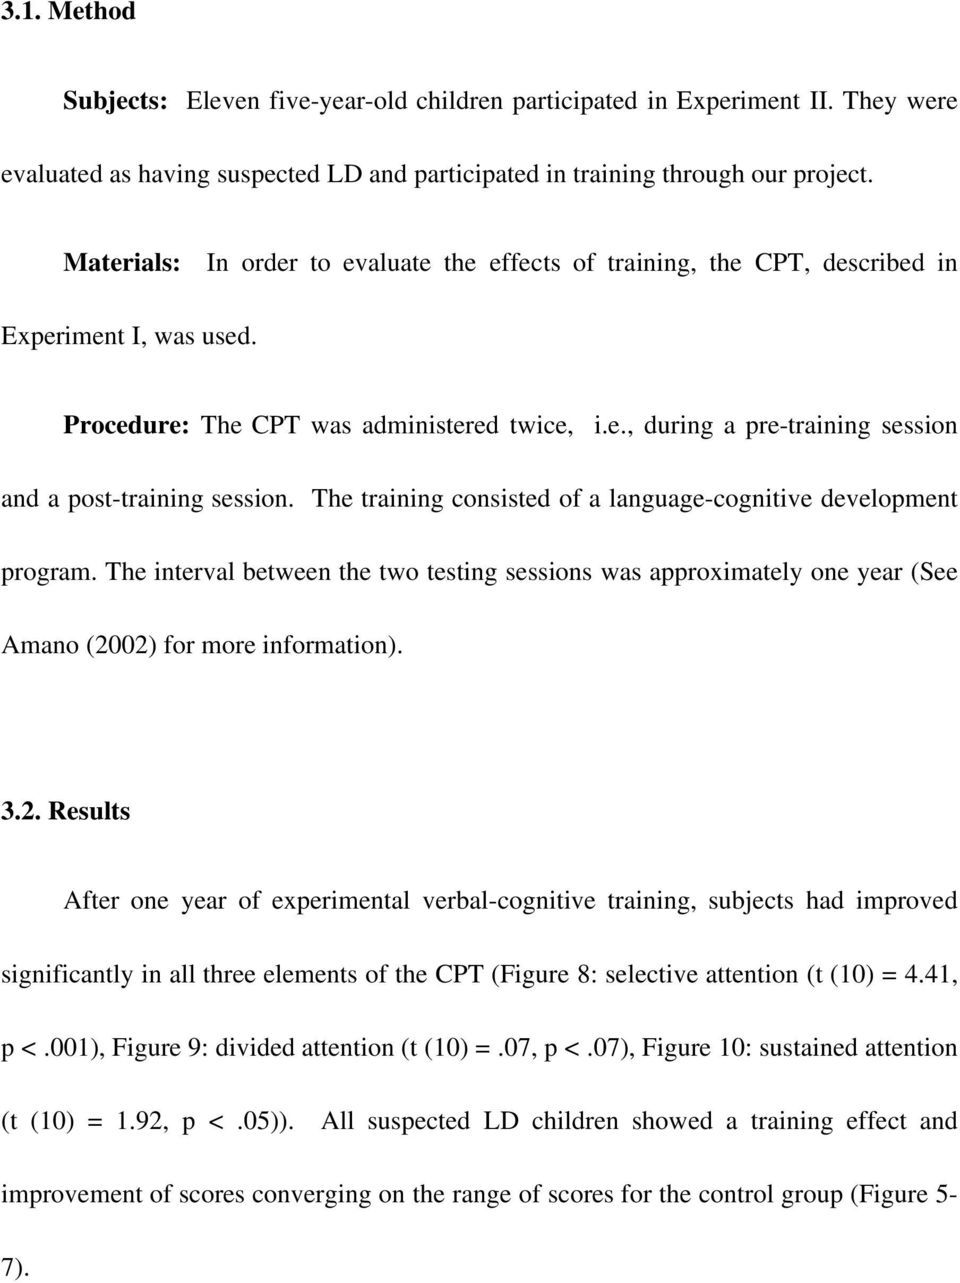 The training consisted of a language-cognitive development program. The interval between the two testing sessions was approximately one year (See Amano (20